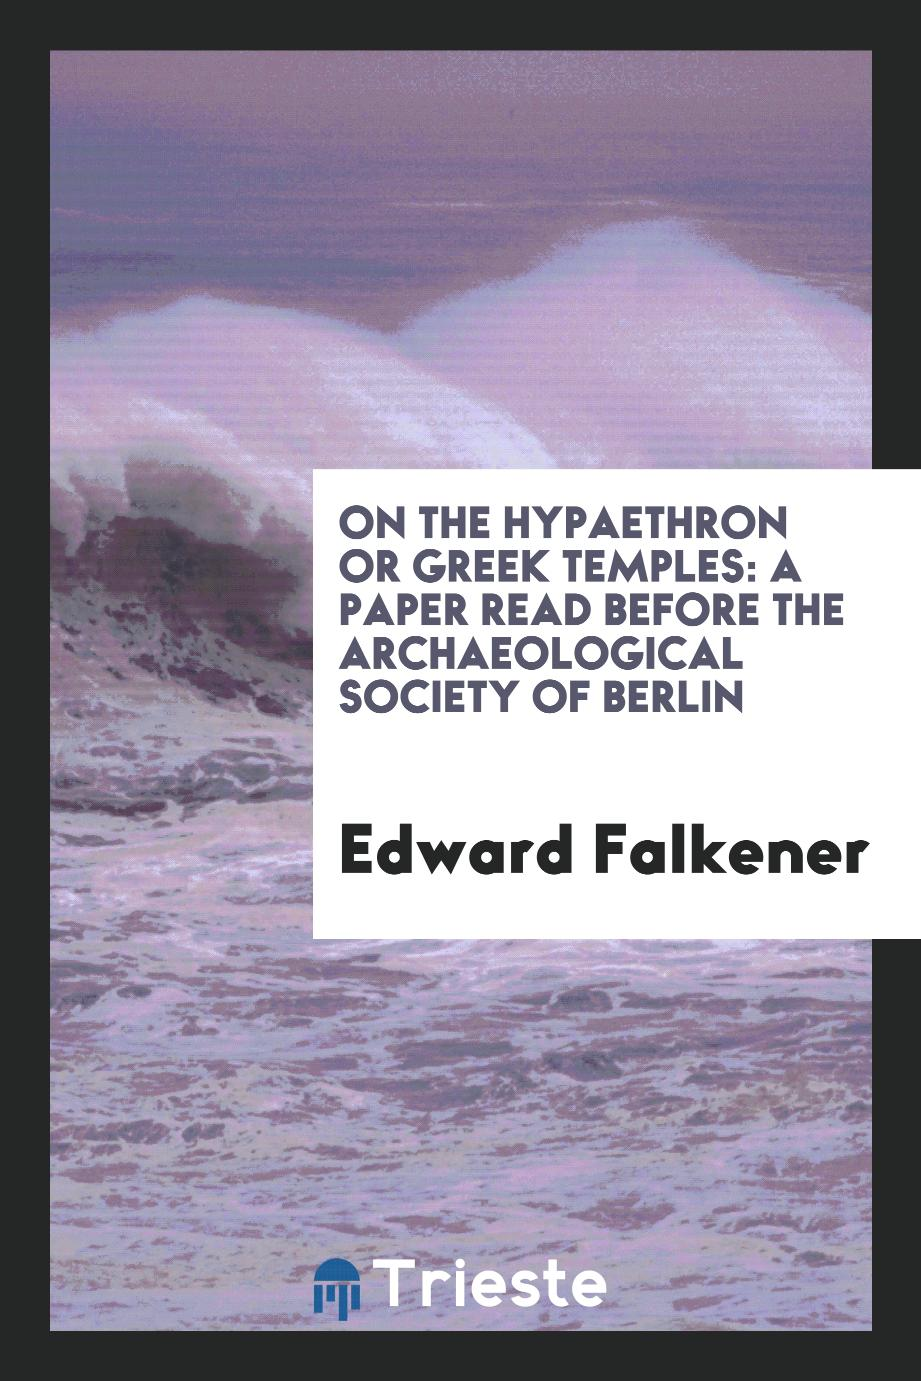 On the Hypaethron Or Greek Temples: A Paper Read Before the Archaeological Society of Berlin